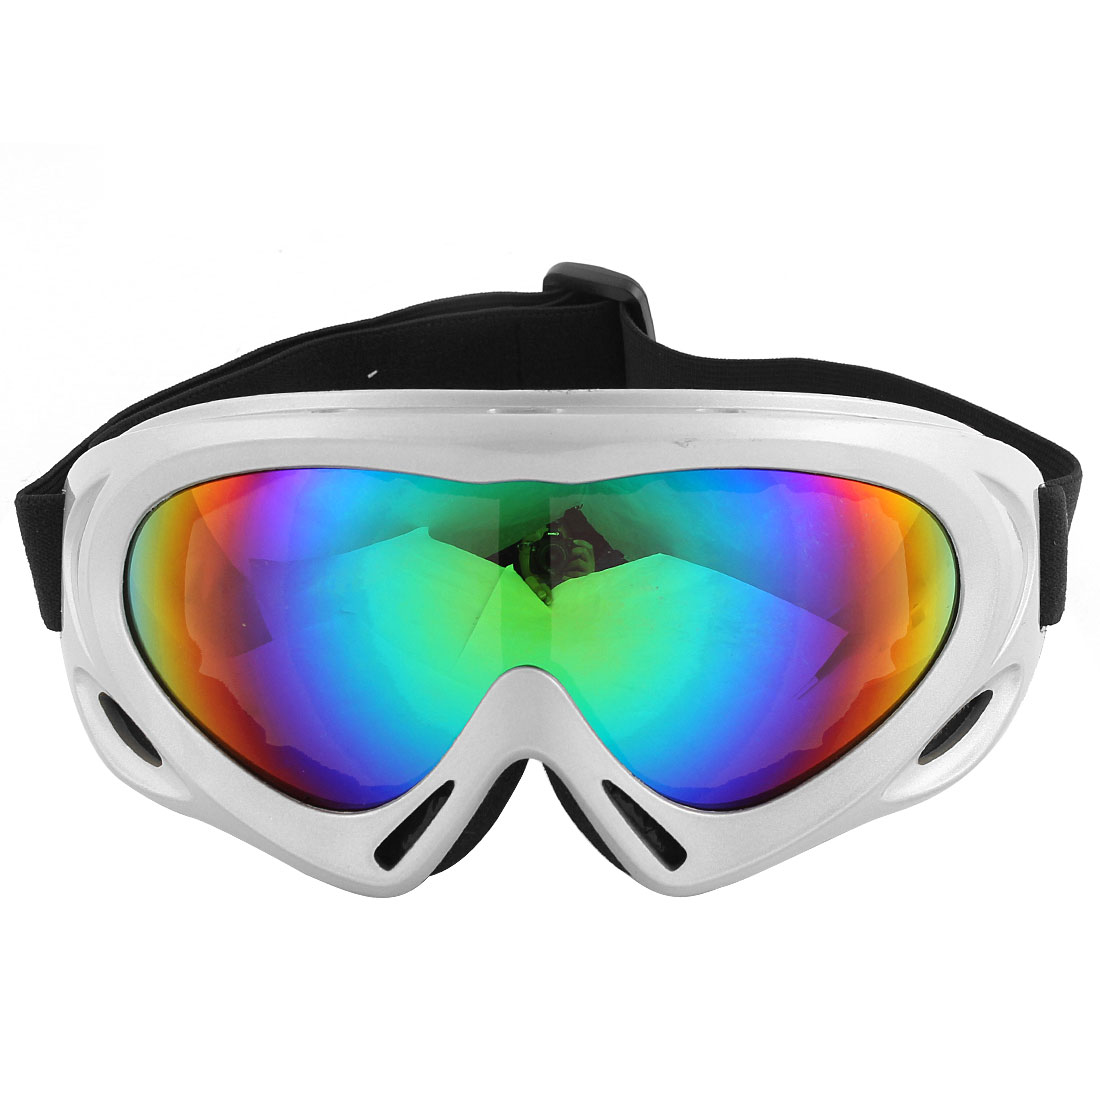 Gray Frame Elastic Strap Colorful Lens Windproof Motorcycle Goggles Eyewear